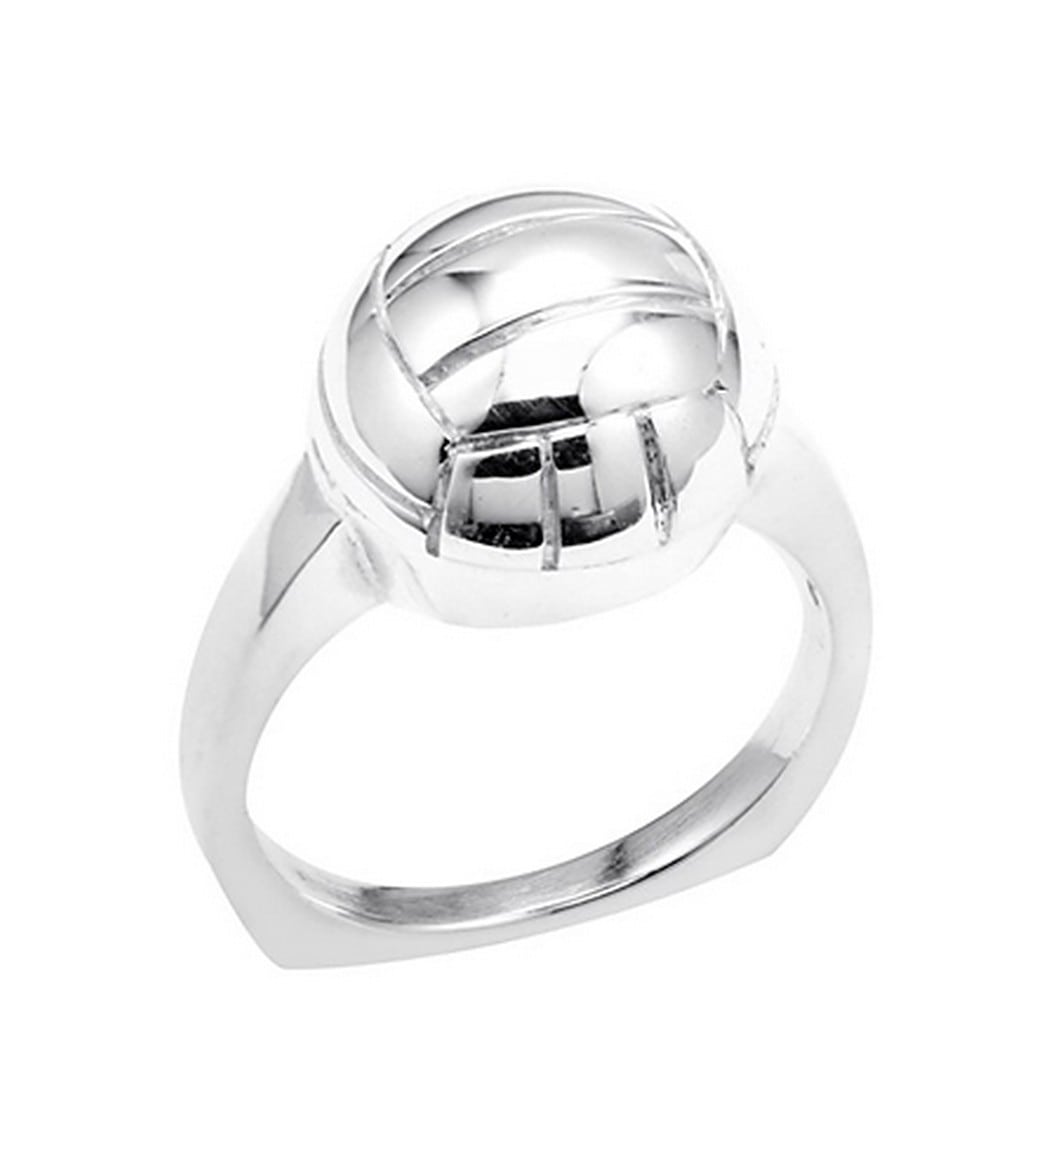 f4a14099b80d9 Sports Collection Jewelry Silver Water Polo Ring Rhodium Plated at  SwimOutlet.com